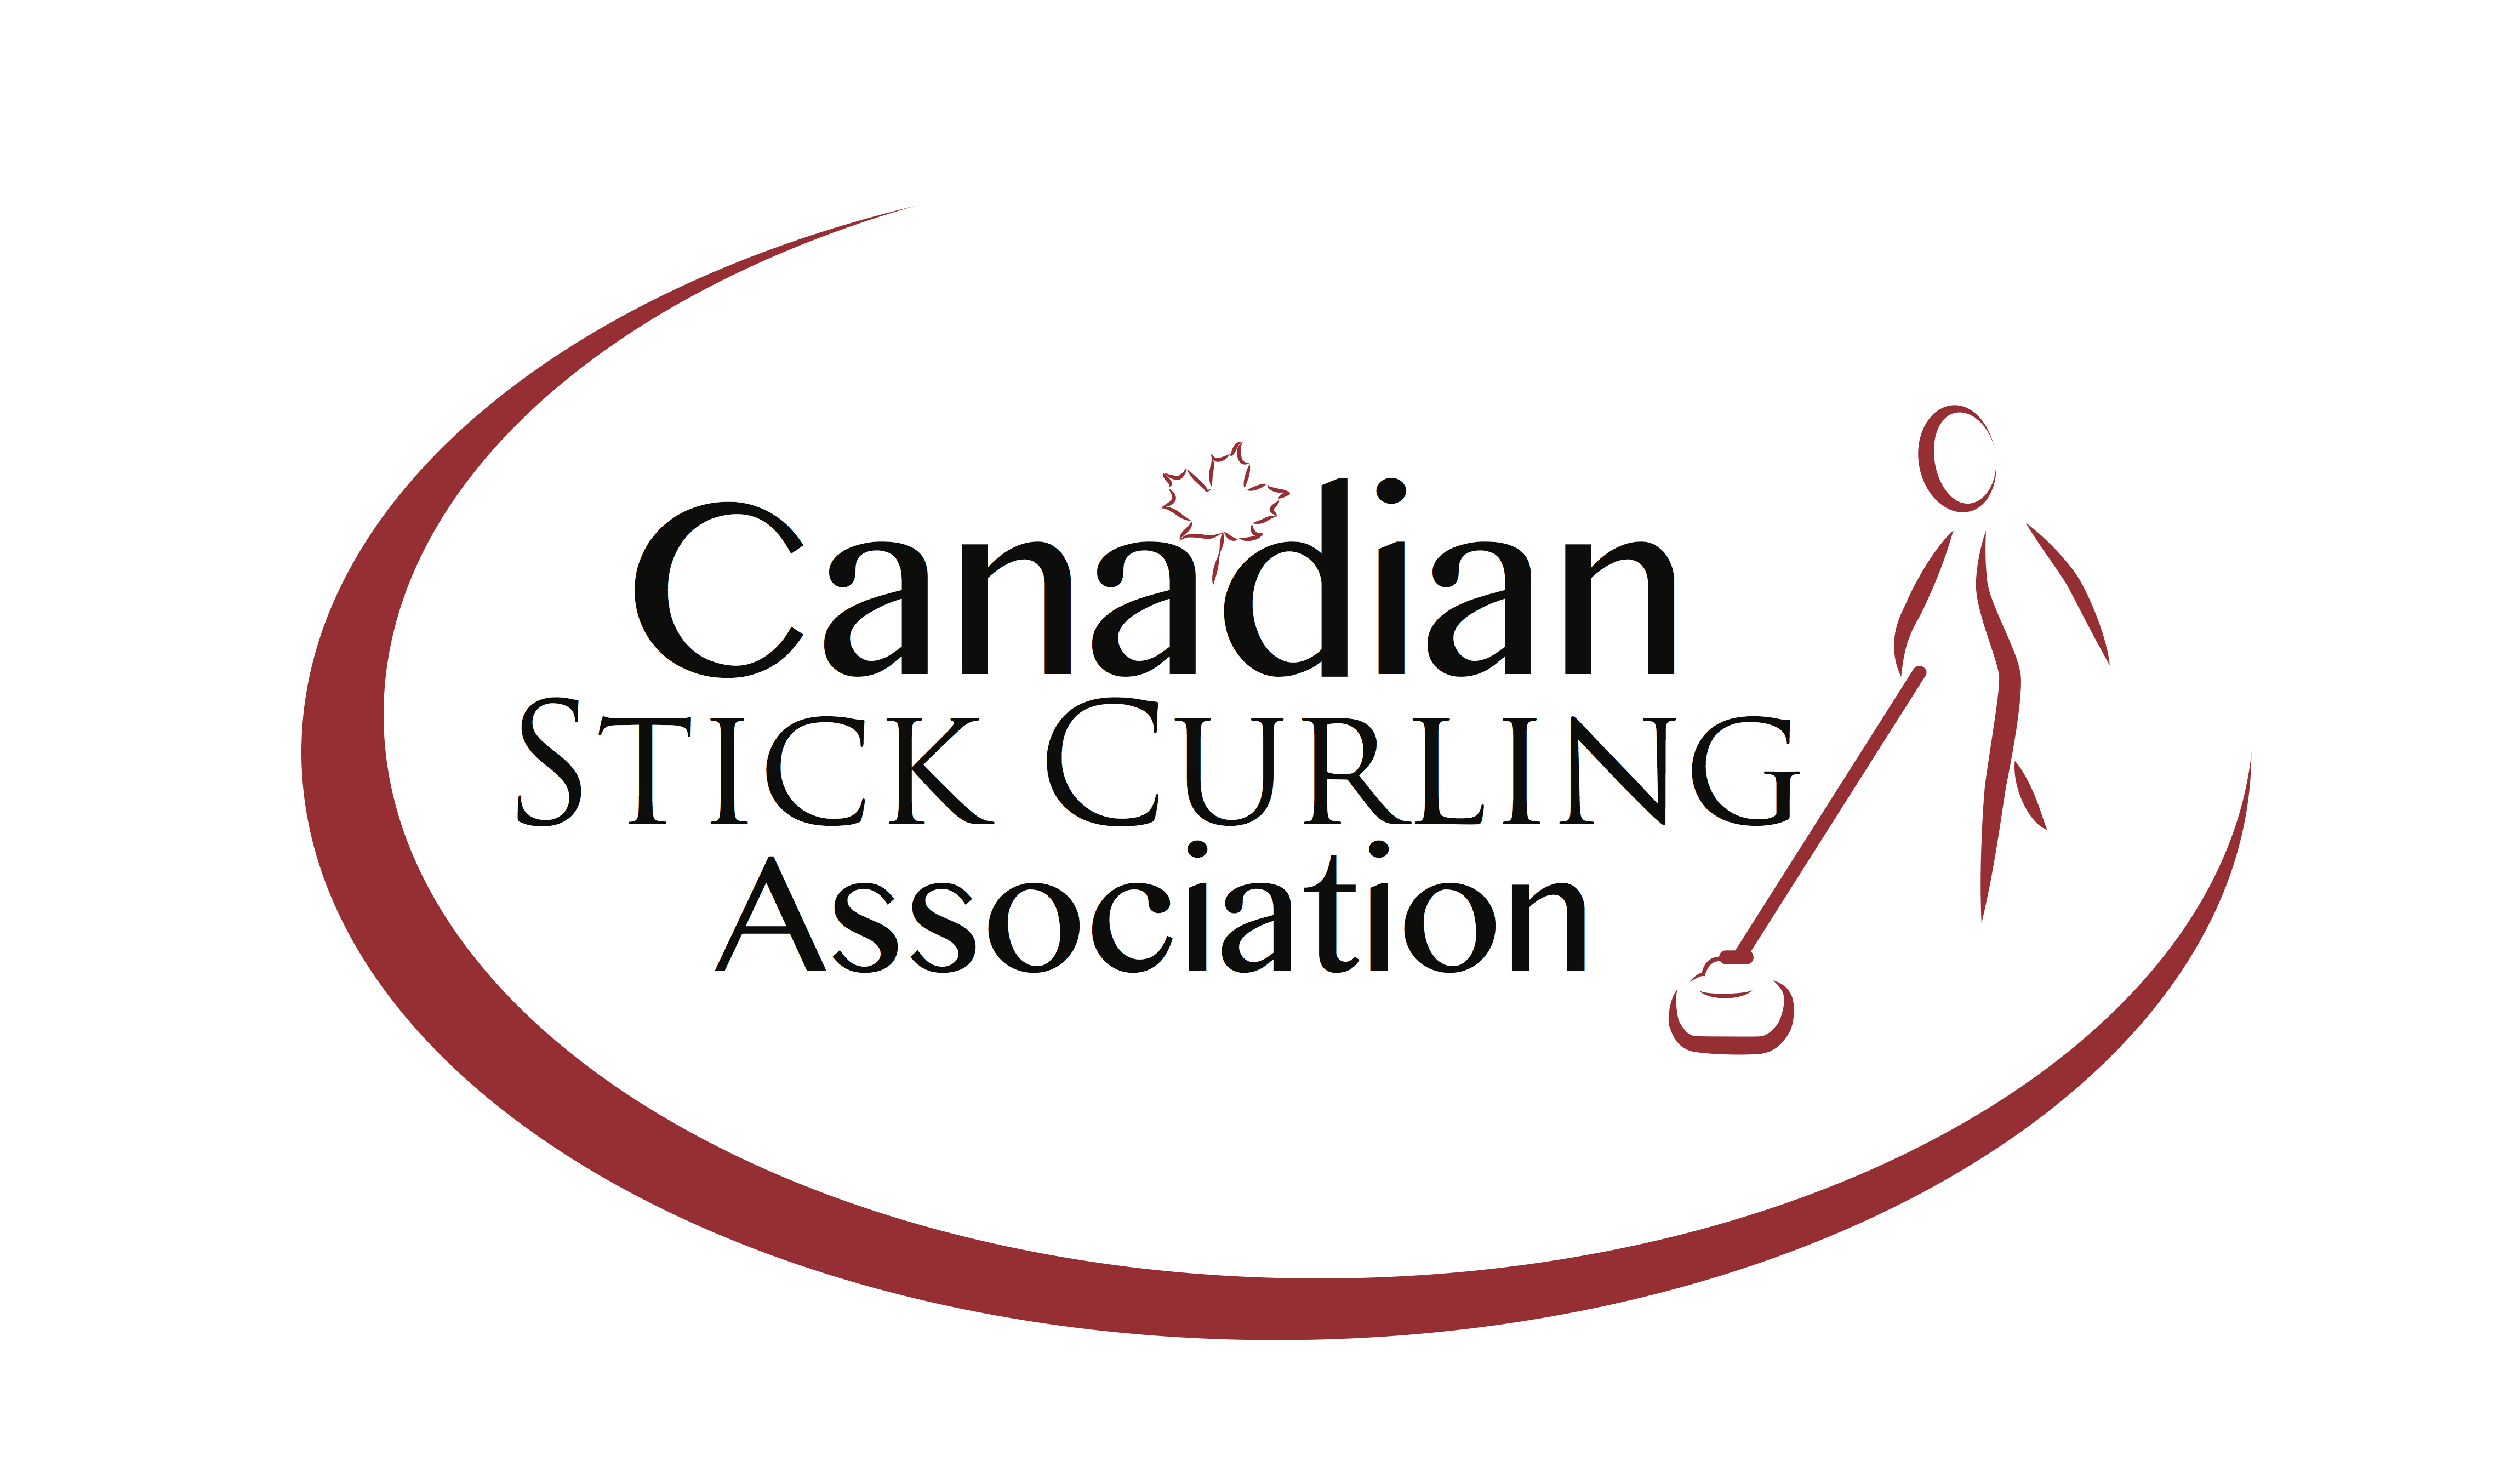 Canadian Stick Curling